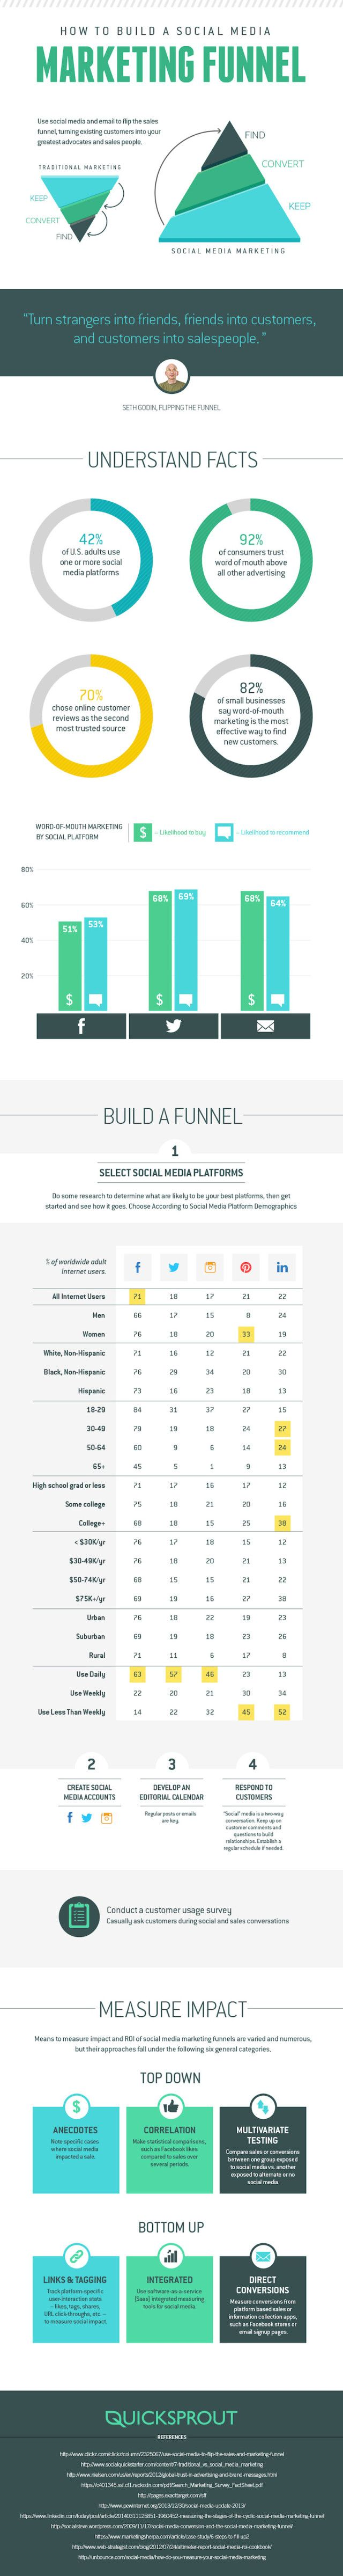 How to Build a Social Media Marketing Funnel #infographic #infografía